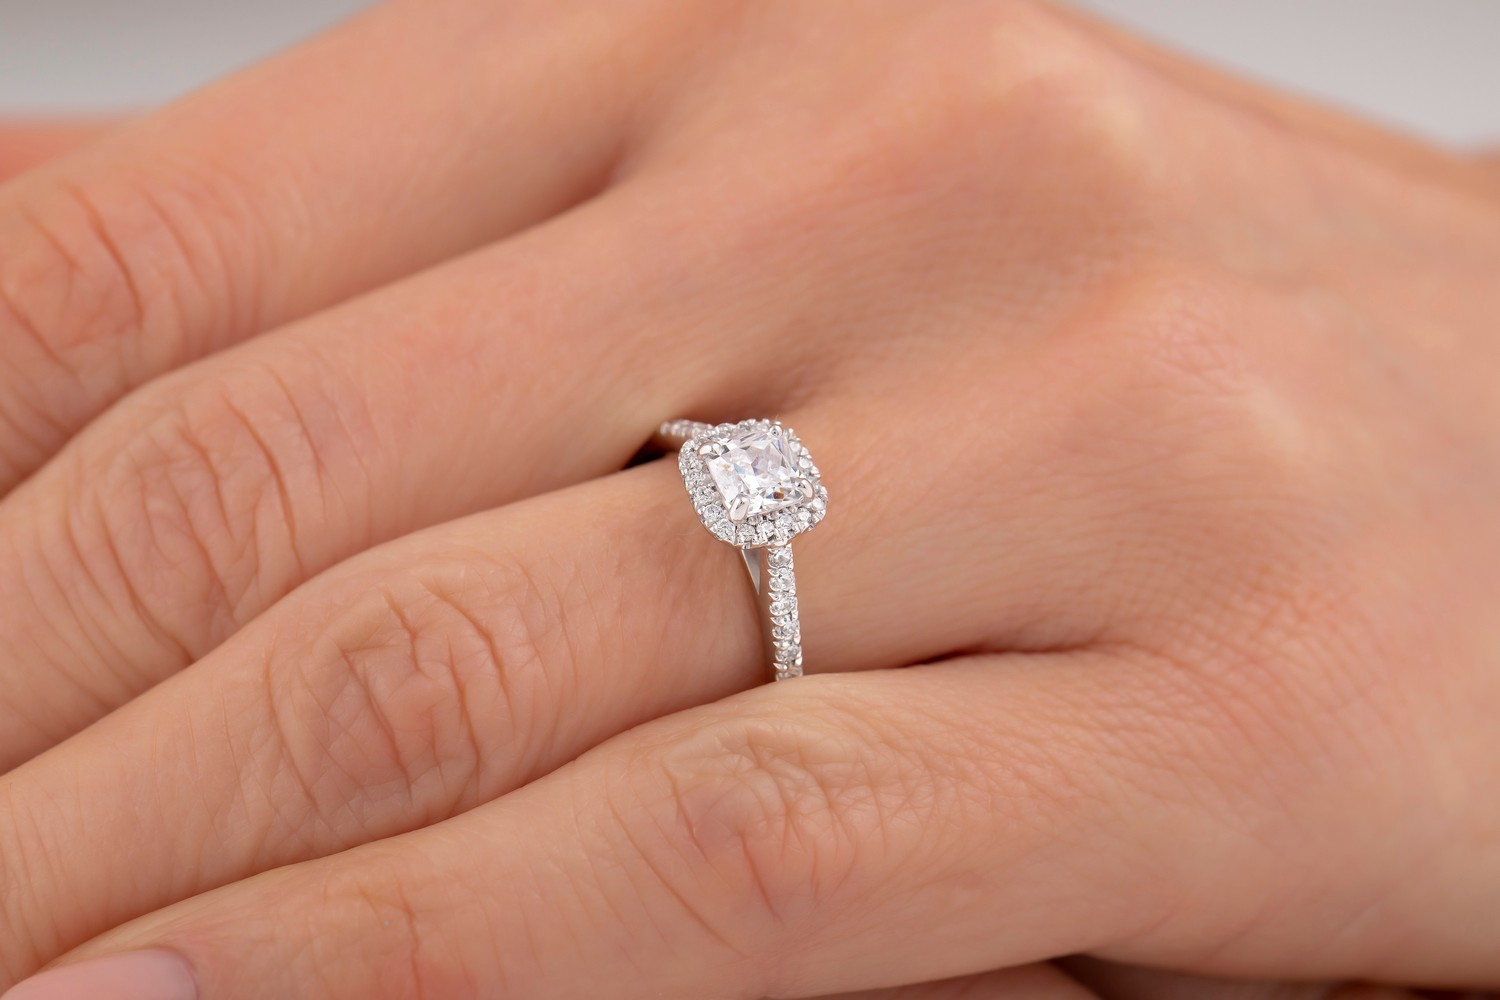 Art Deco Style Ring/Diamond Cluster Engagement Ring for Women in platinum with a cushion cut centre stone surrounded by small round brilliant cut diamonds all in a claw setting-img1